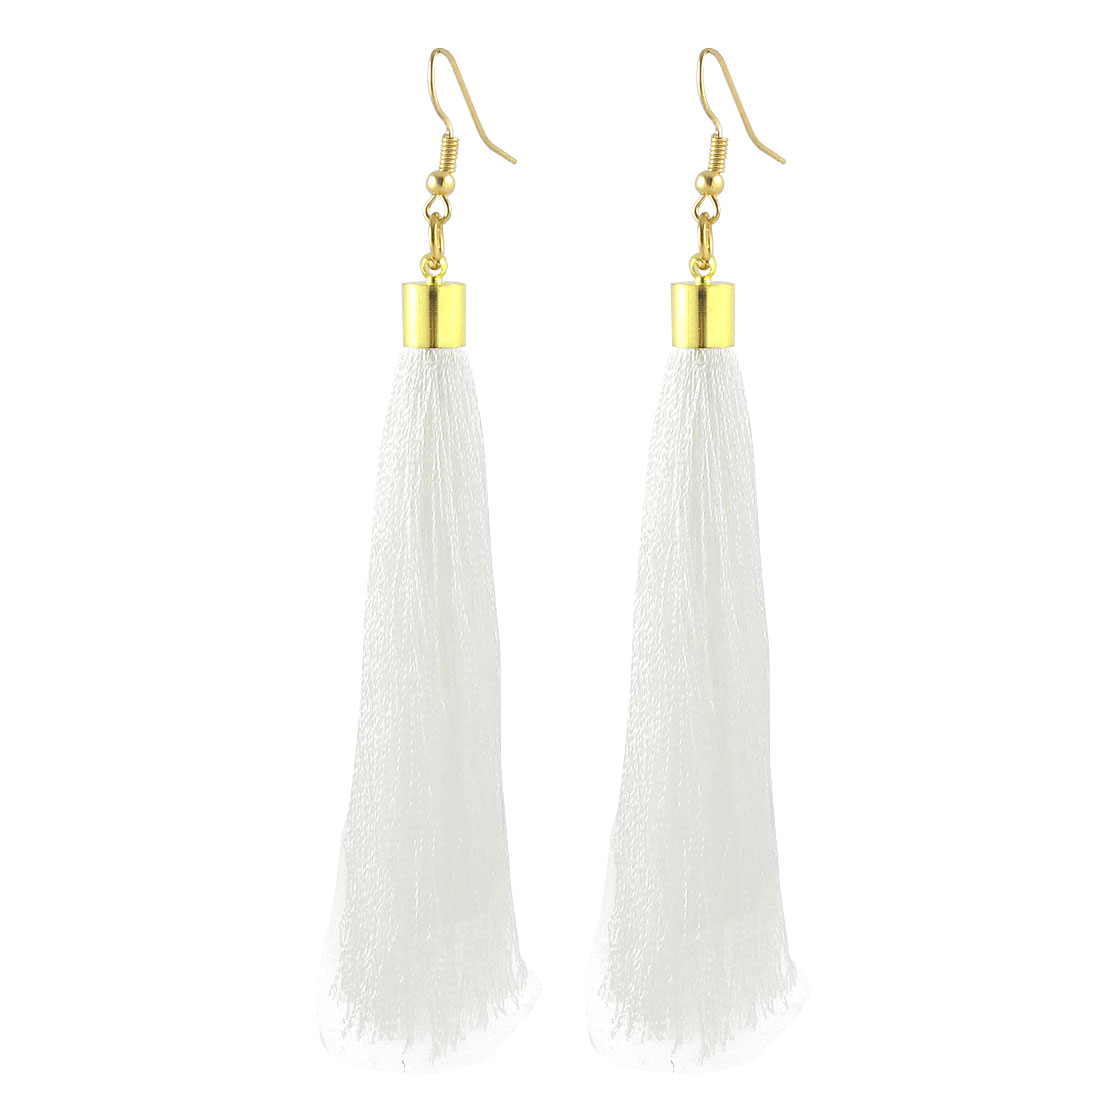 Spring Adornment Fish Hook Long Tassels Drop Dangle Earrings Eardrop Pair White